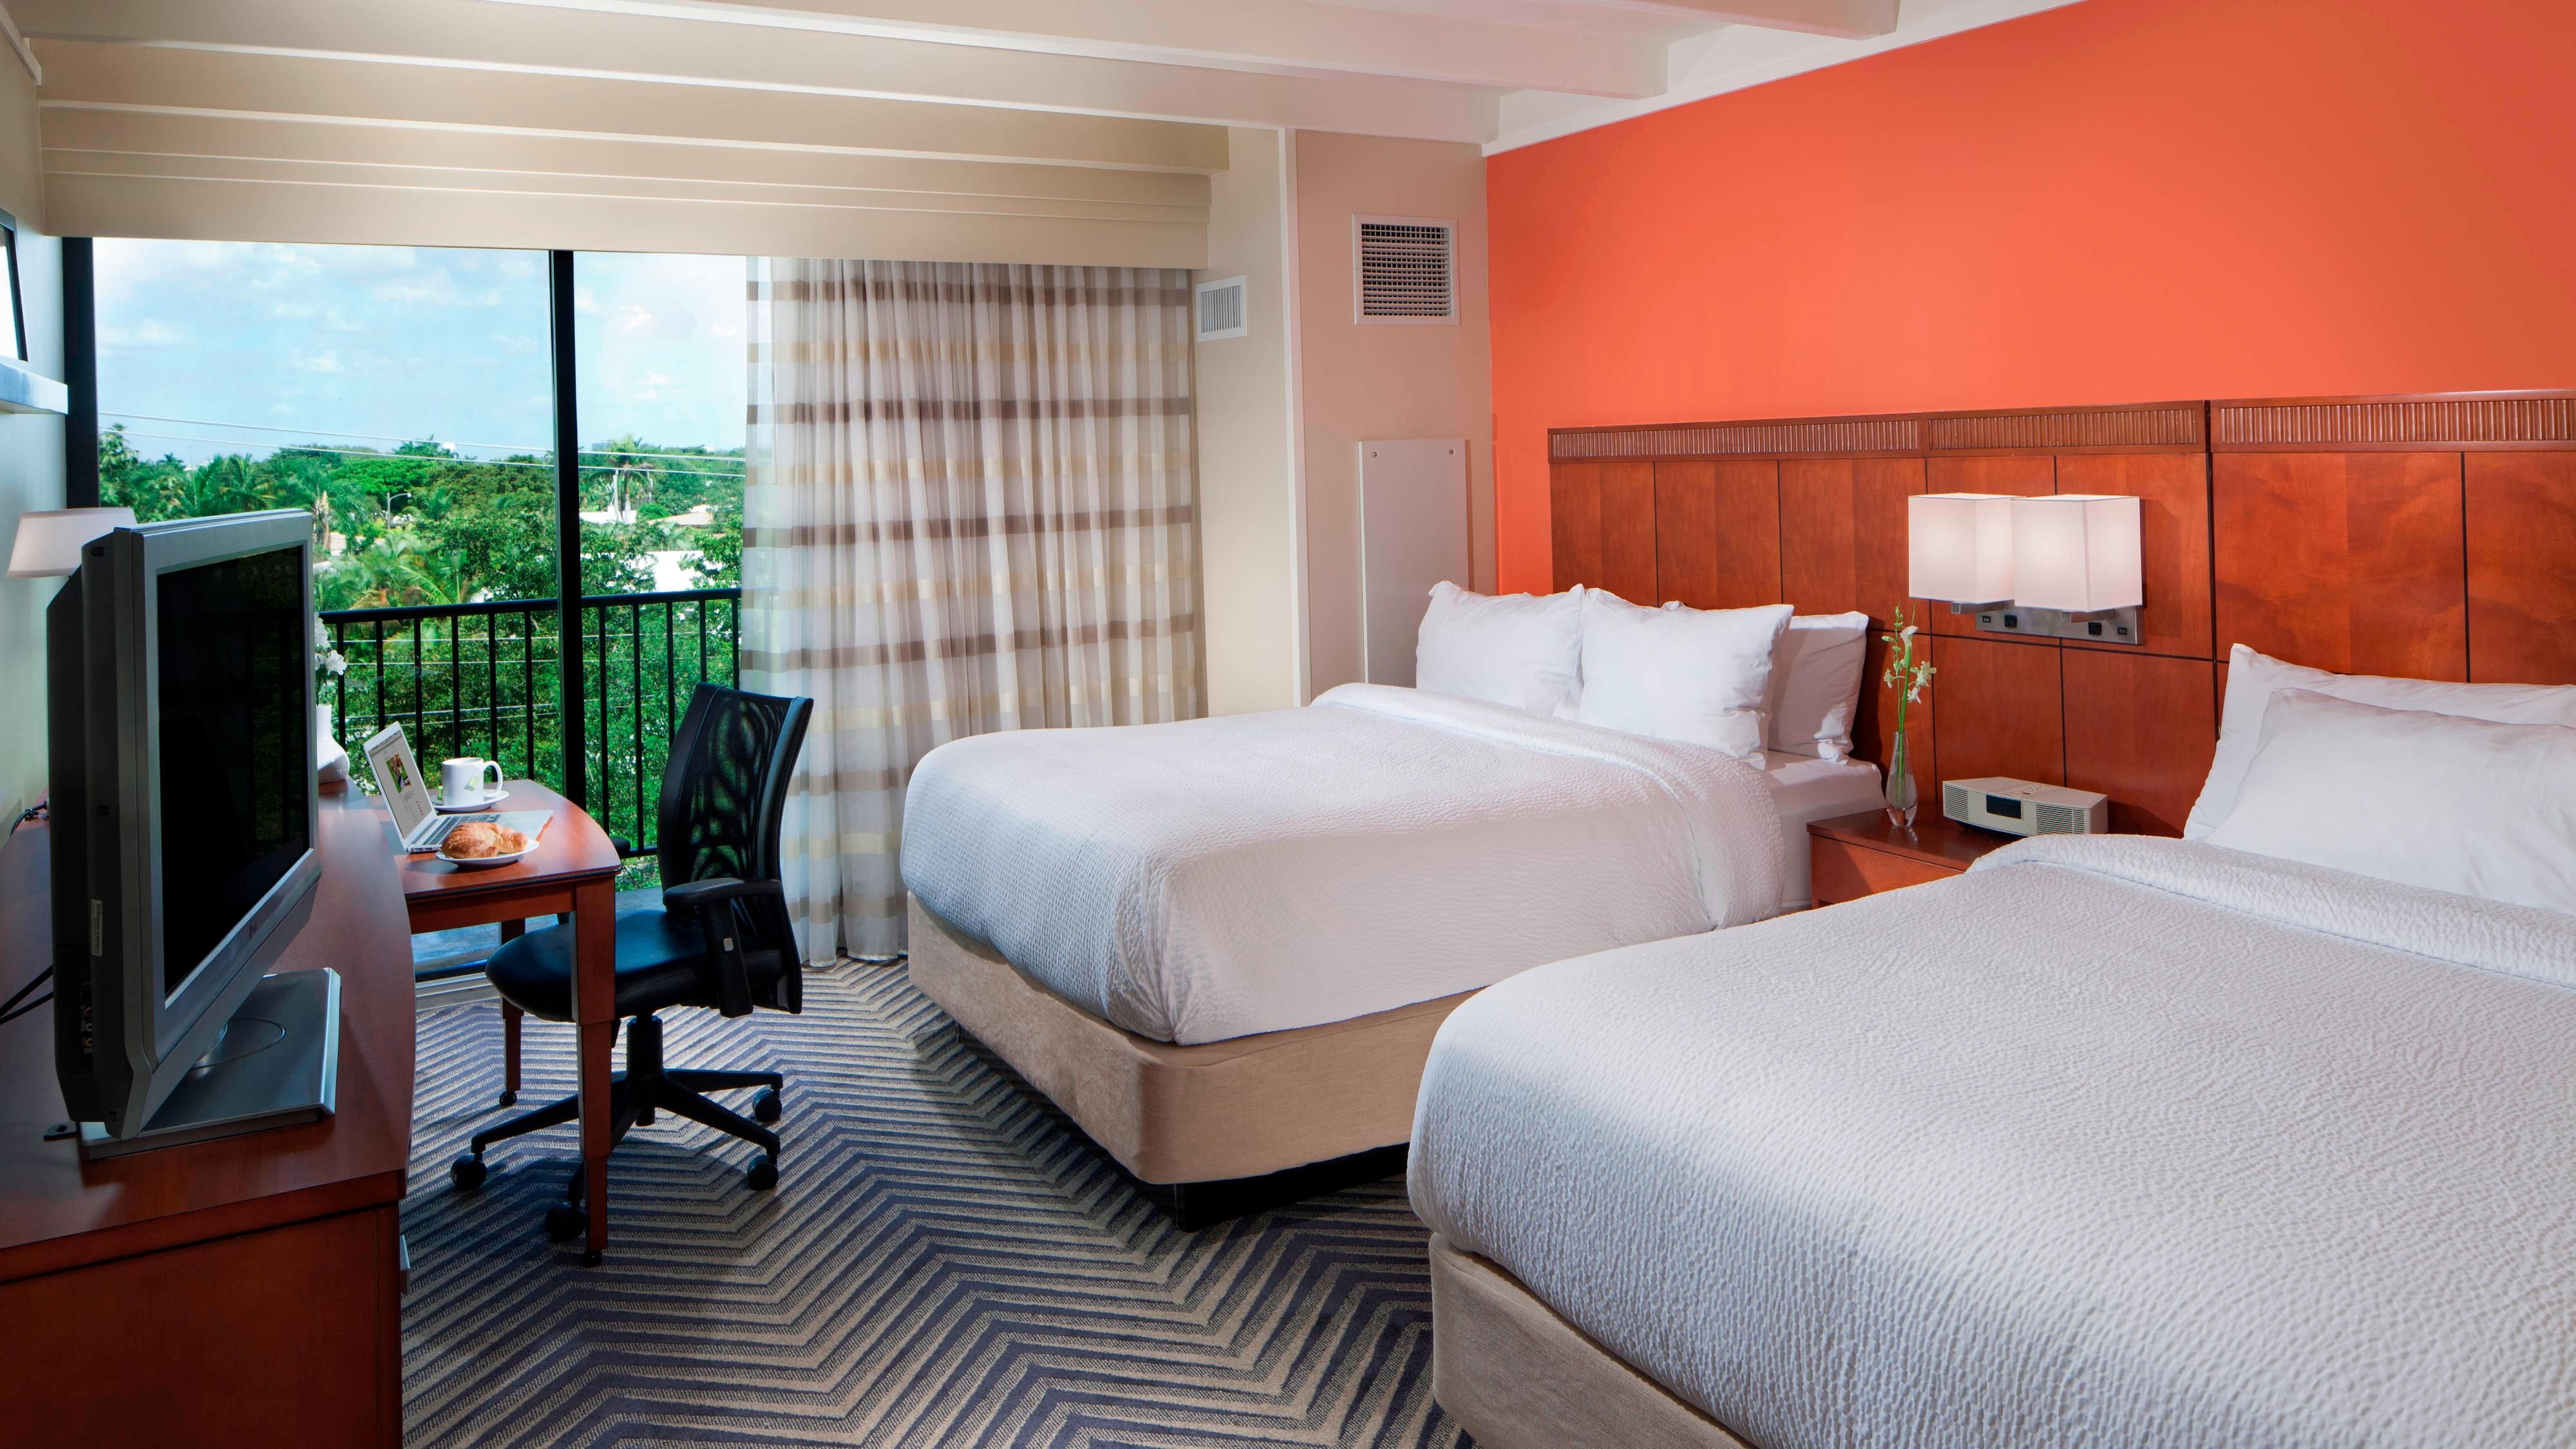 North Fort Lauderdale Hotel Rooms